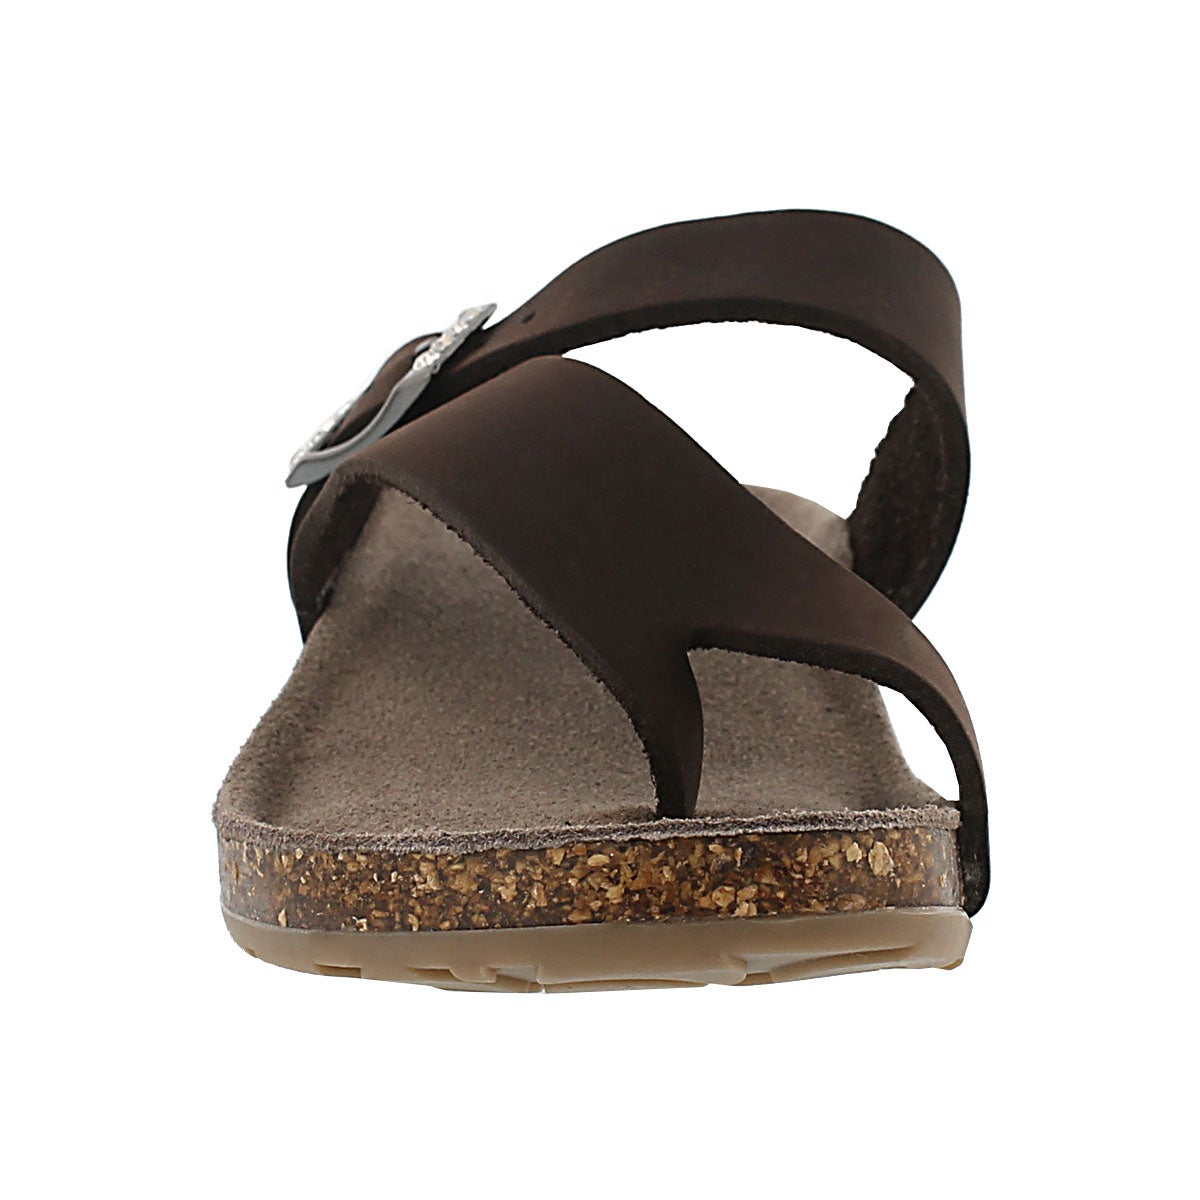 Lds Amber 3 brown crz memory foam sandal